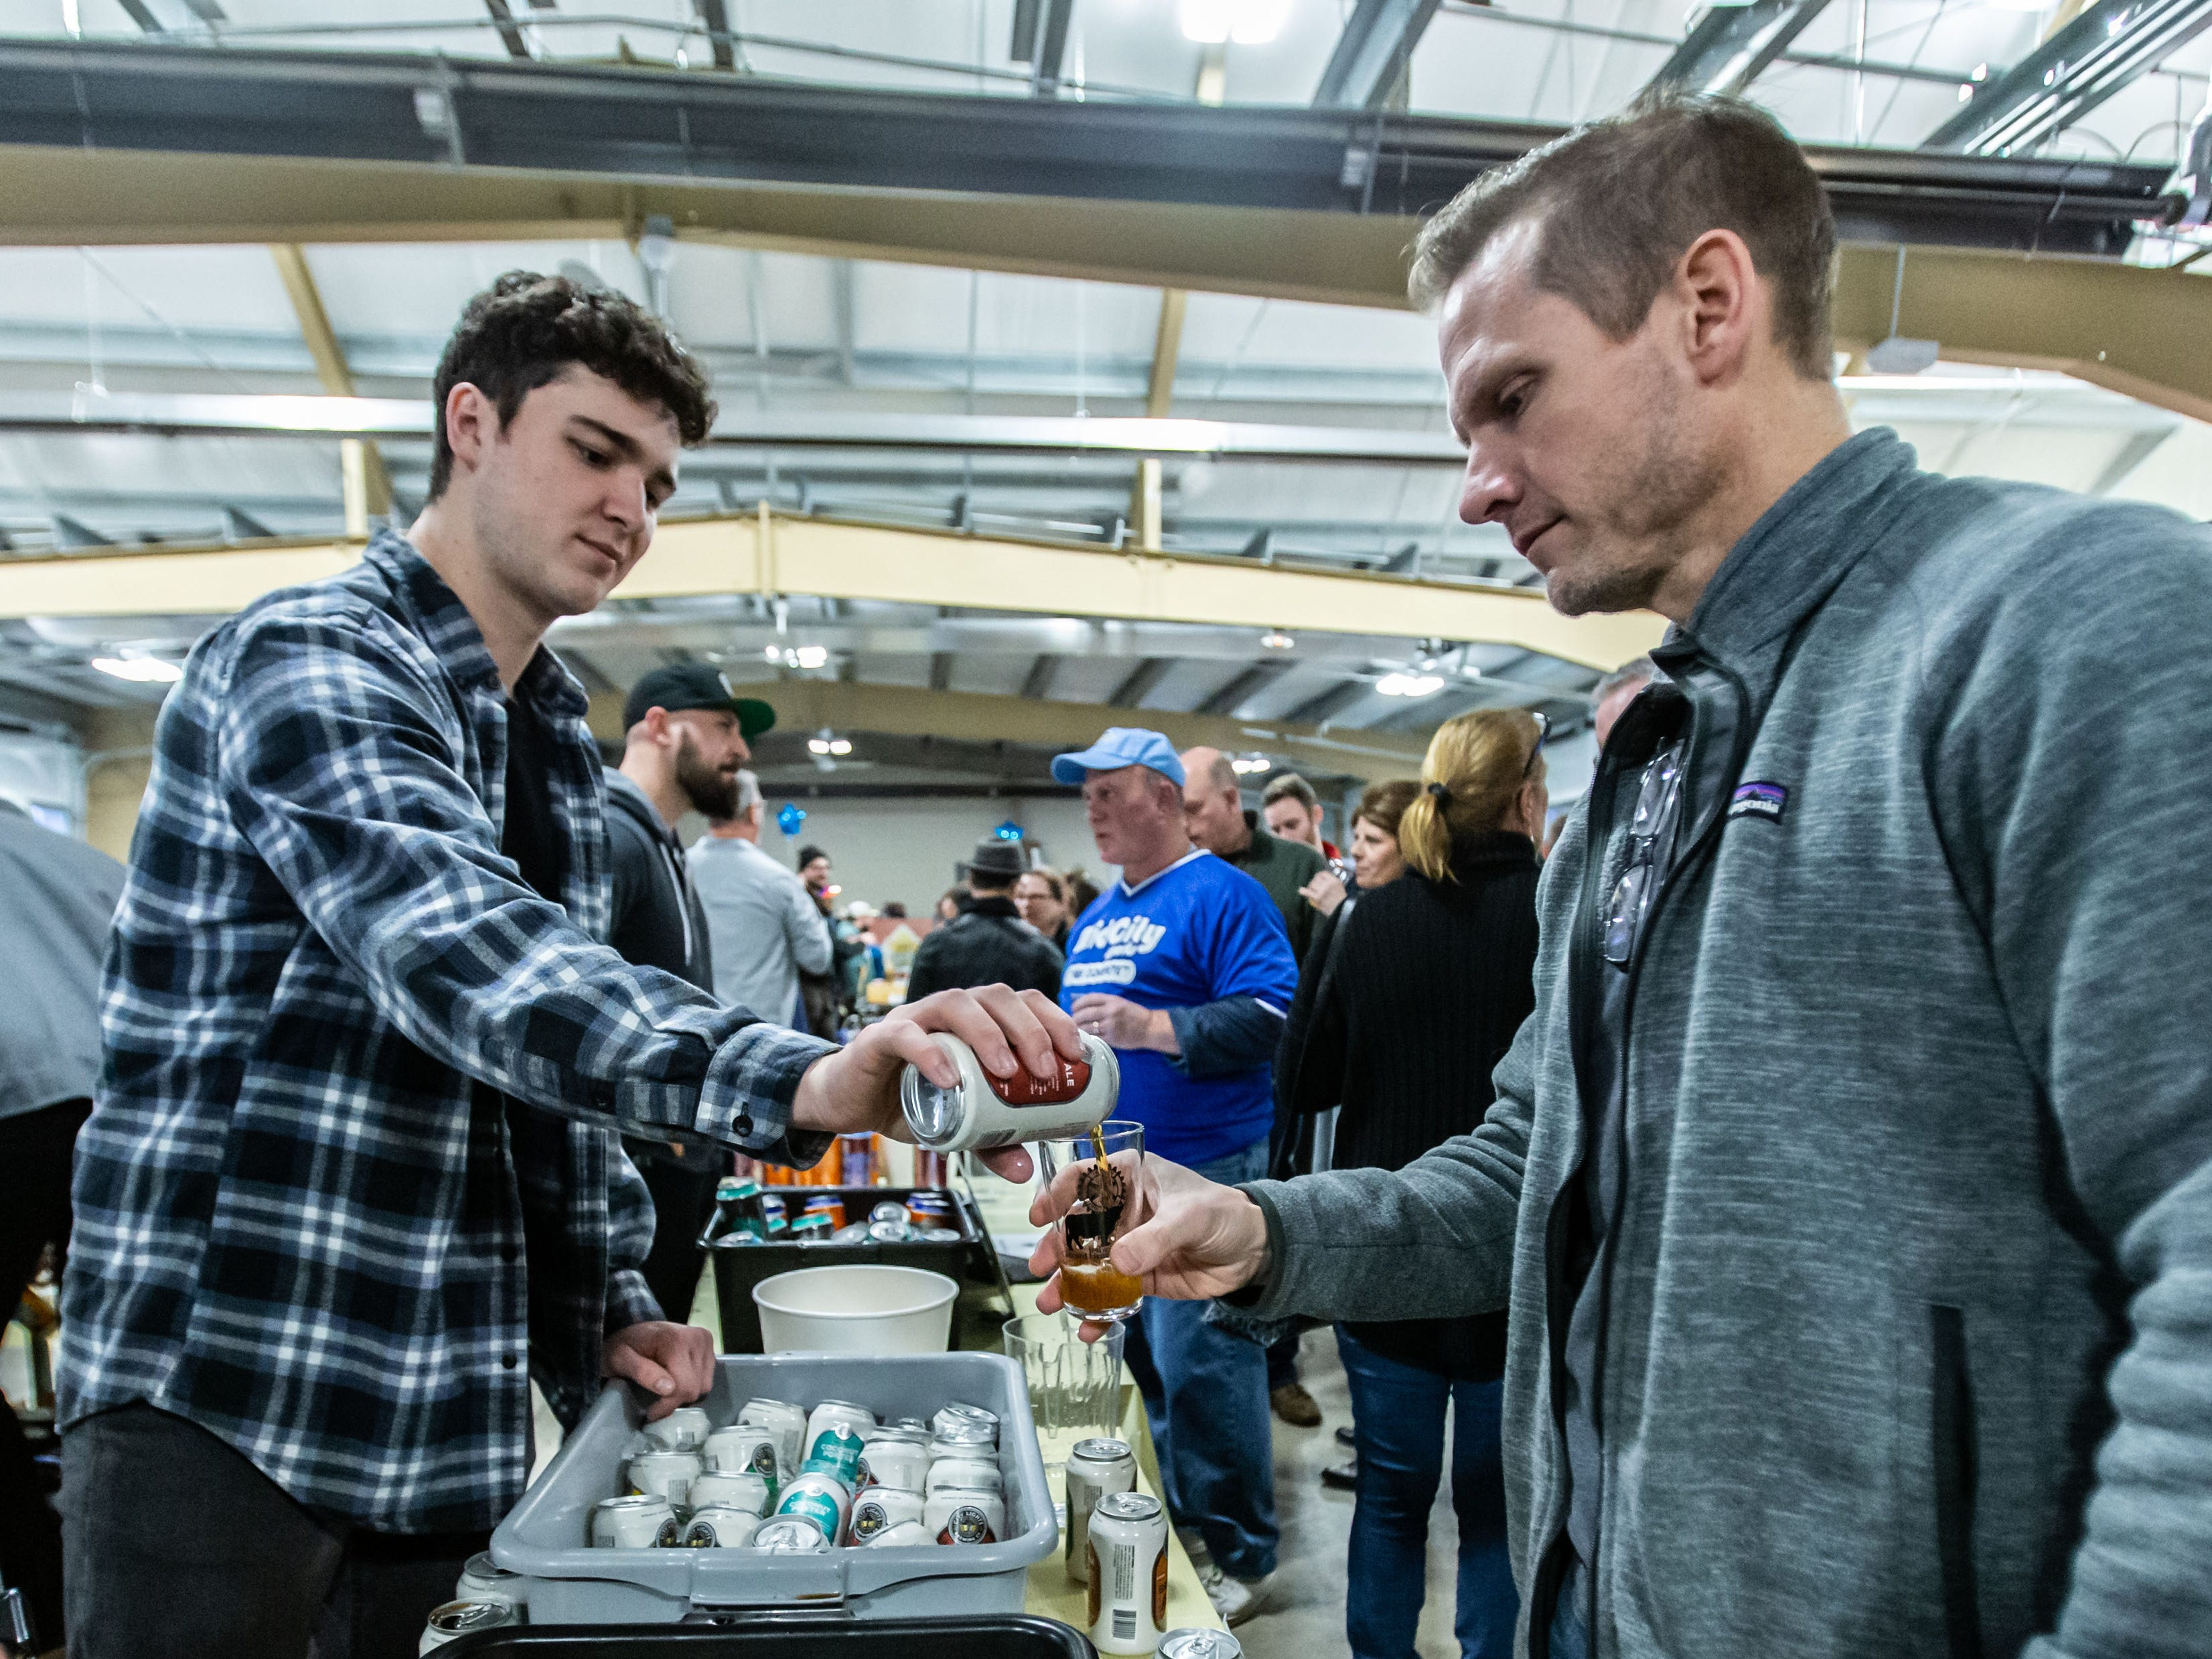 Dan Zurawski of City Lights Brewing Company pours a beer for Brian Wargula of Nashotah during the Oconomowoc Rotary Club's 13th annual Oconomowoc Wine & Brewfest in Okauchee on Saturday, March 2, 2019.